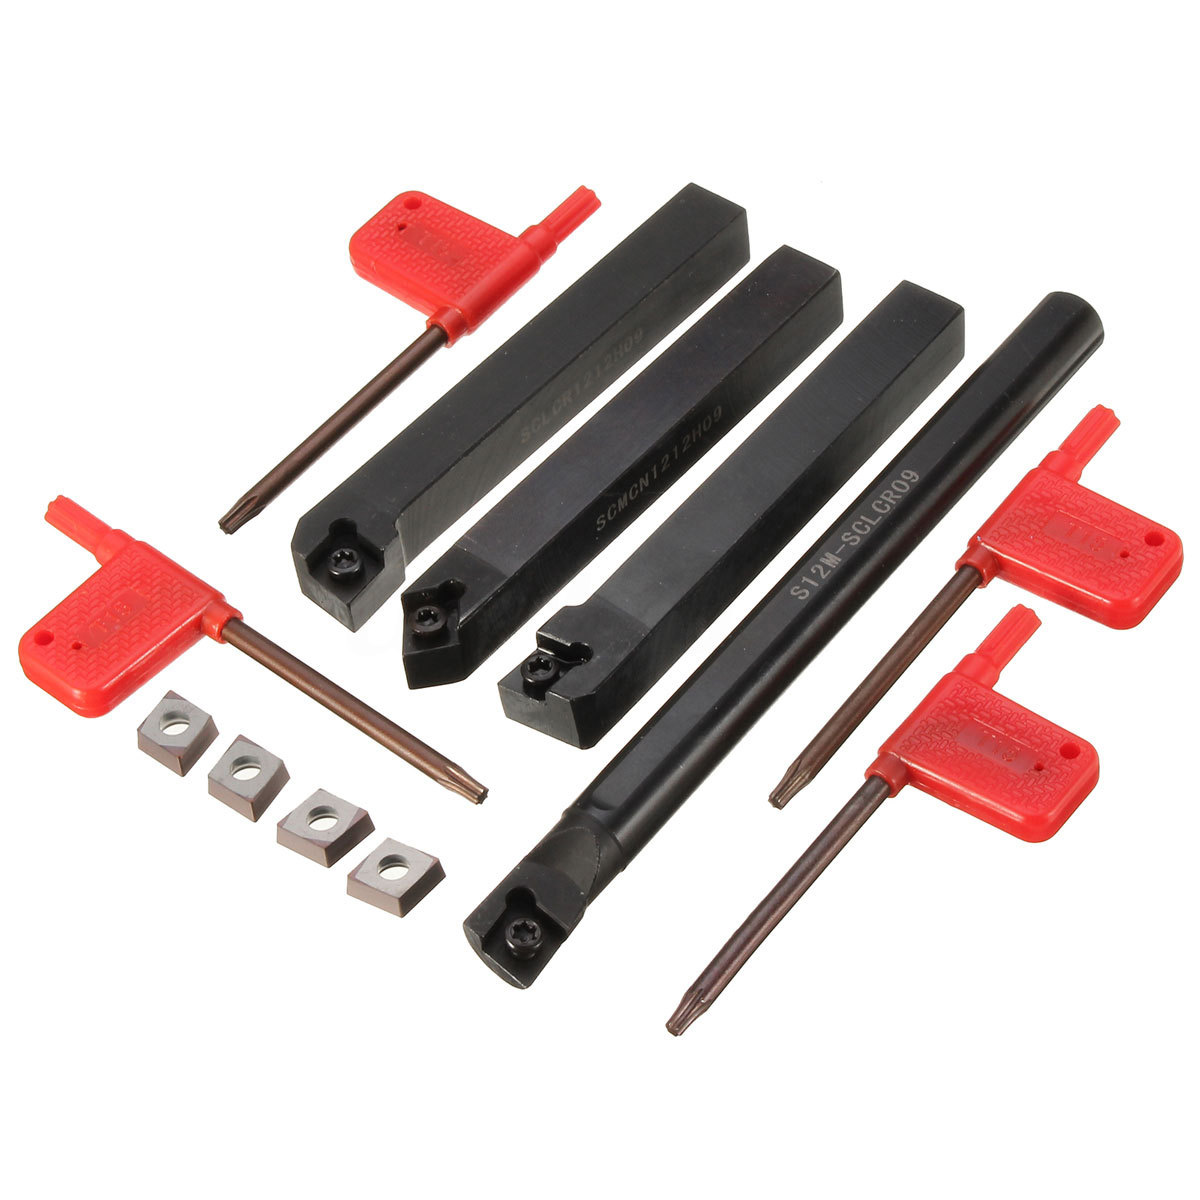 4pcs Lathe Index Boring Bar Turning Tool Holder + 4pcs CCMT09T3 YBC251 Carbide Inserts + 4pcs Wrenches solid carbide c12q sclcr09 180mm hot sale sclcr lathe turning holder boring bar insert for semi finishing